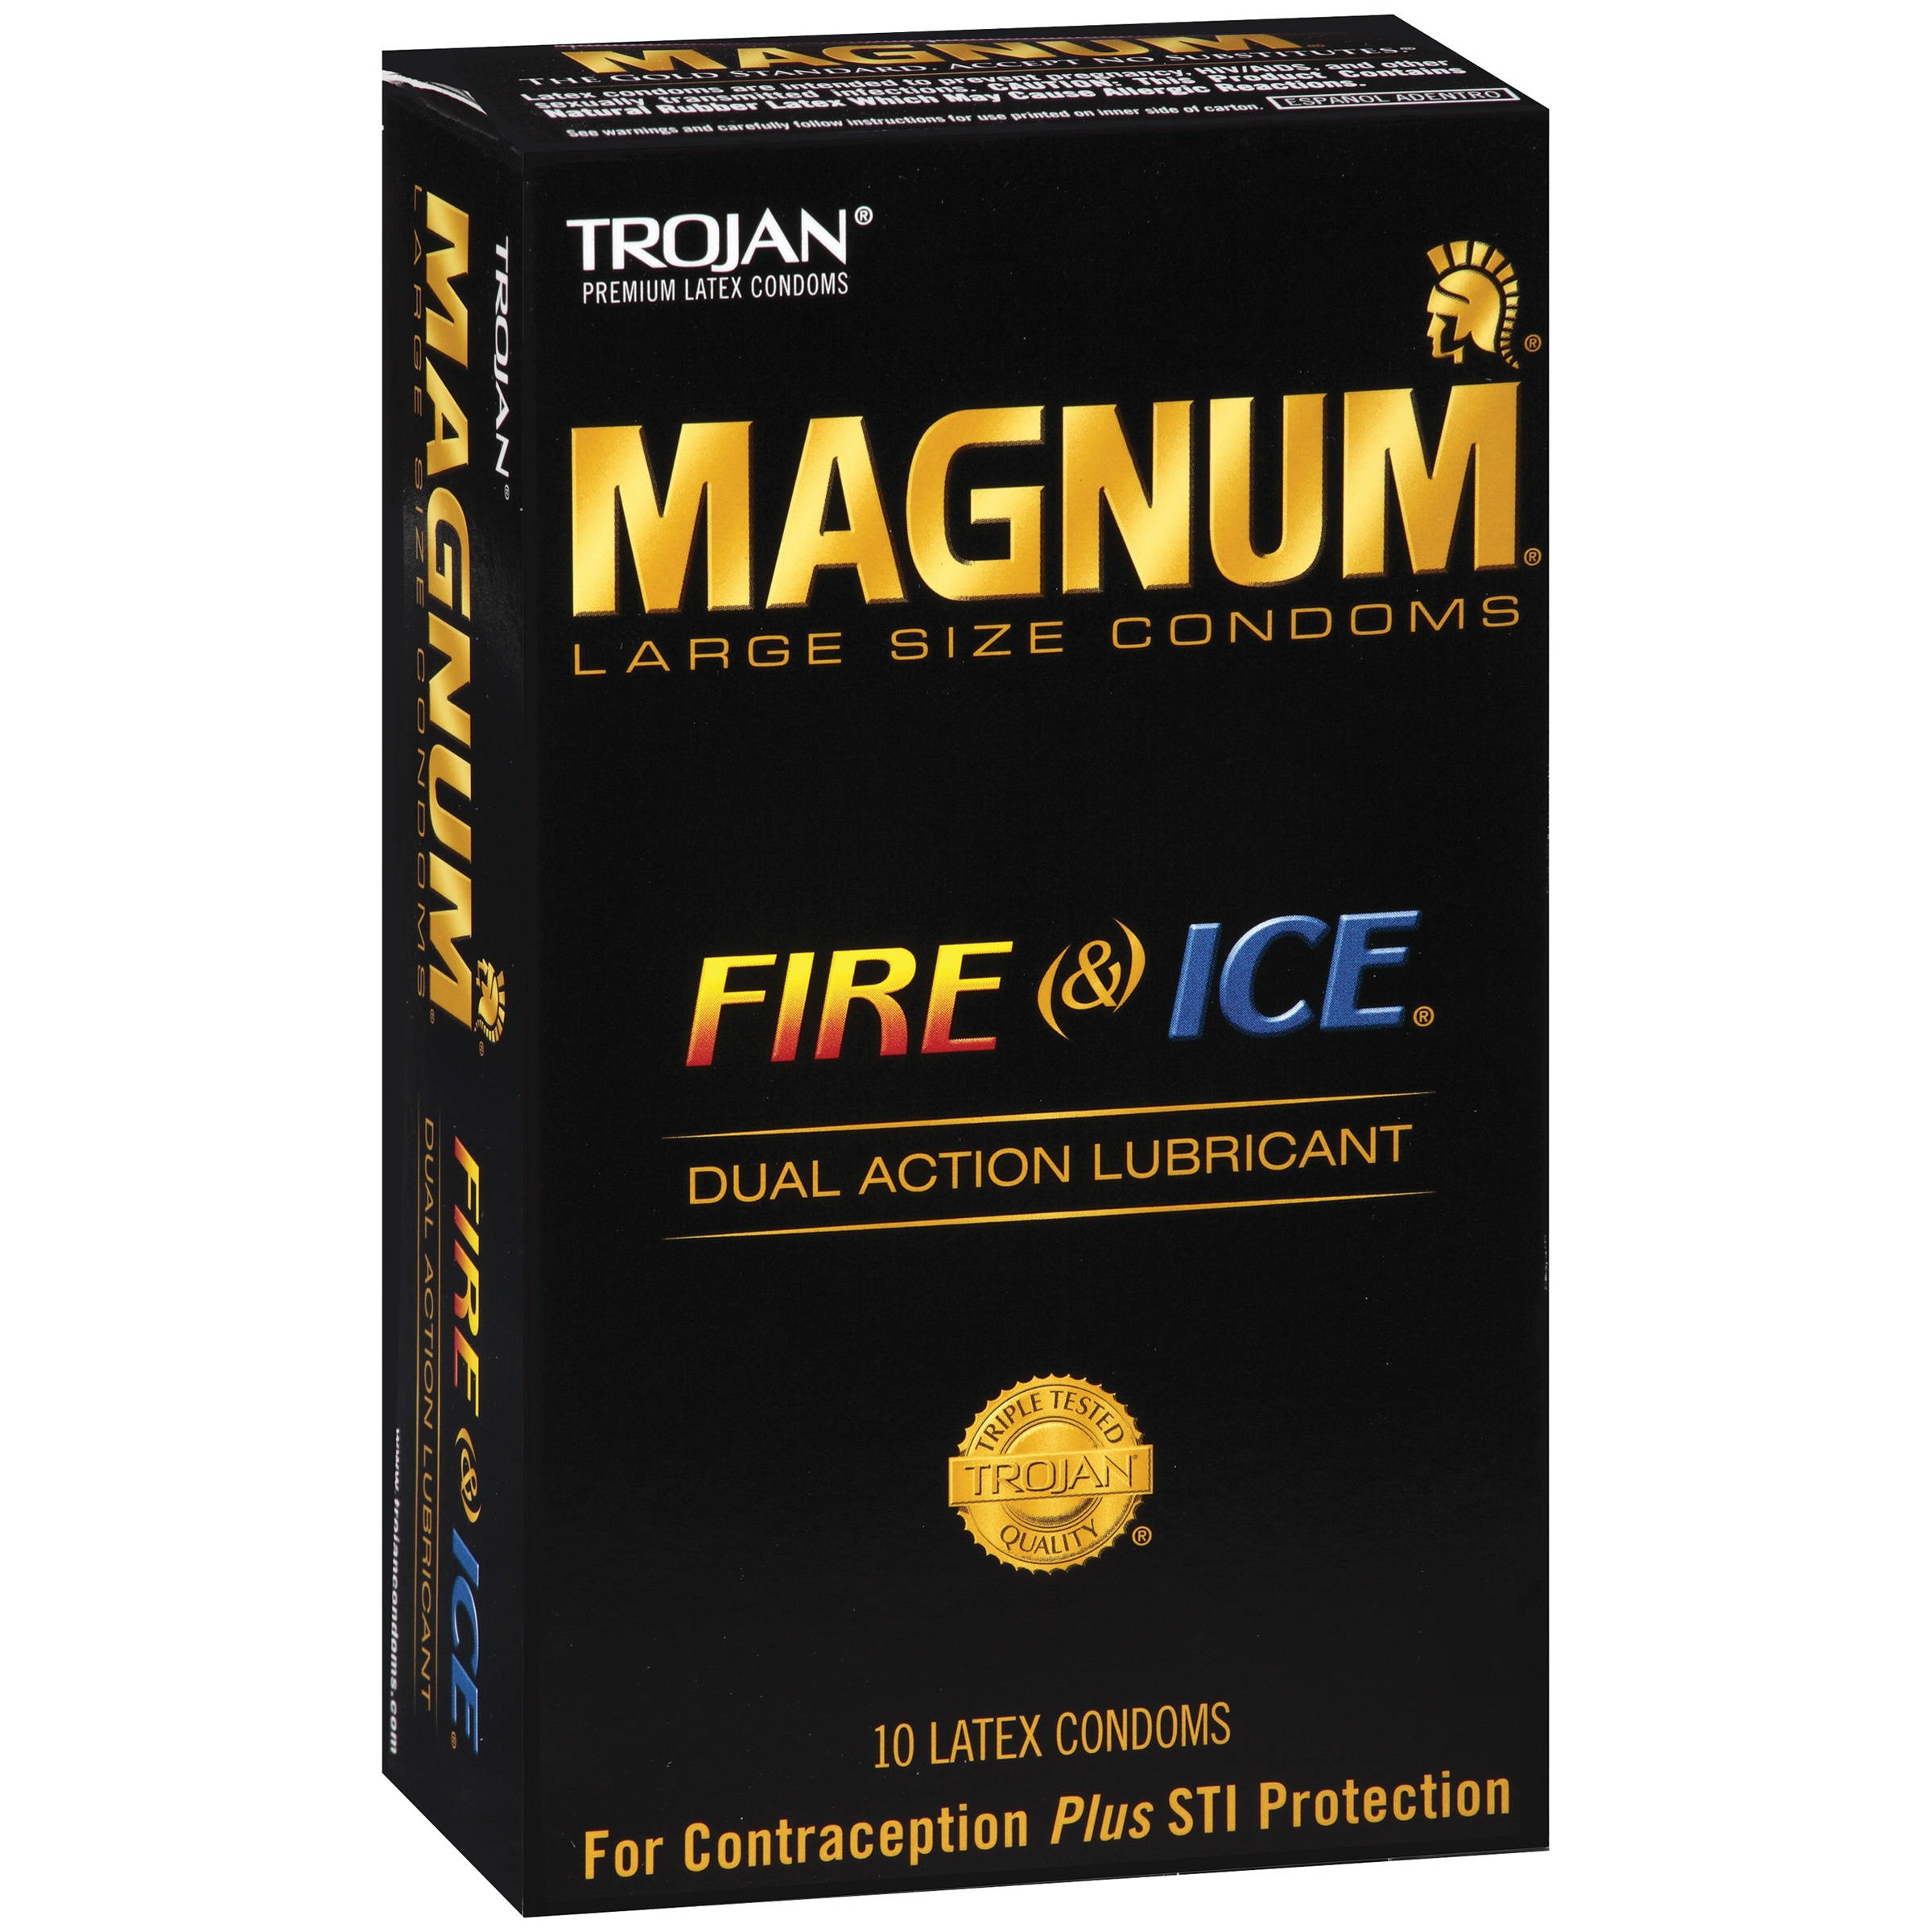 Trojan Magnum Fire and Ice Large Size Lubricated Latex Condoms - 10 ct